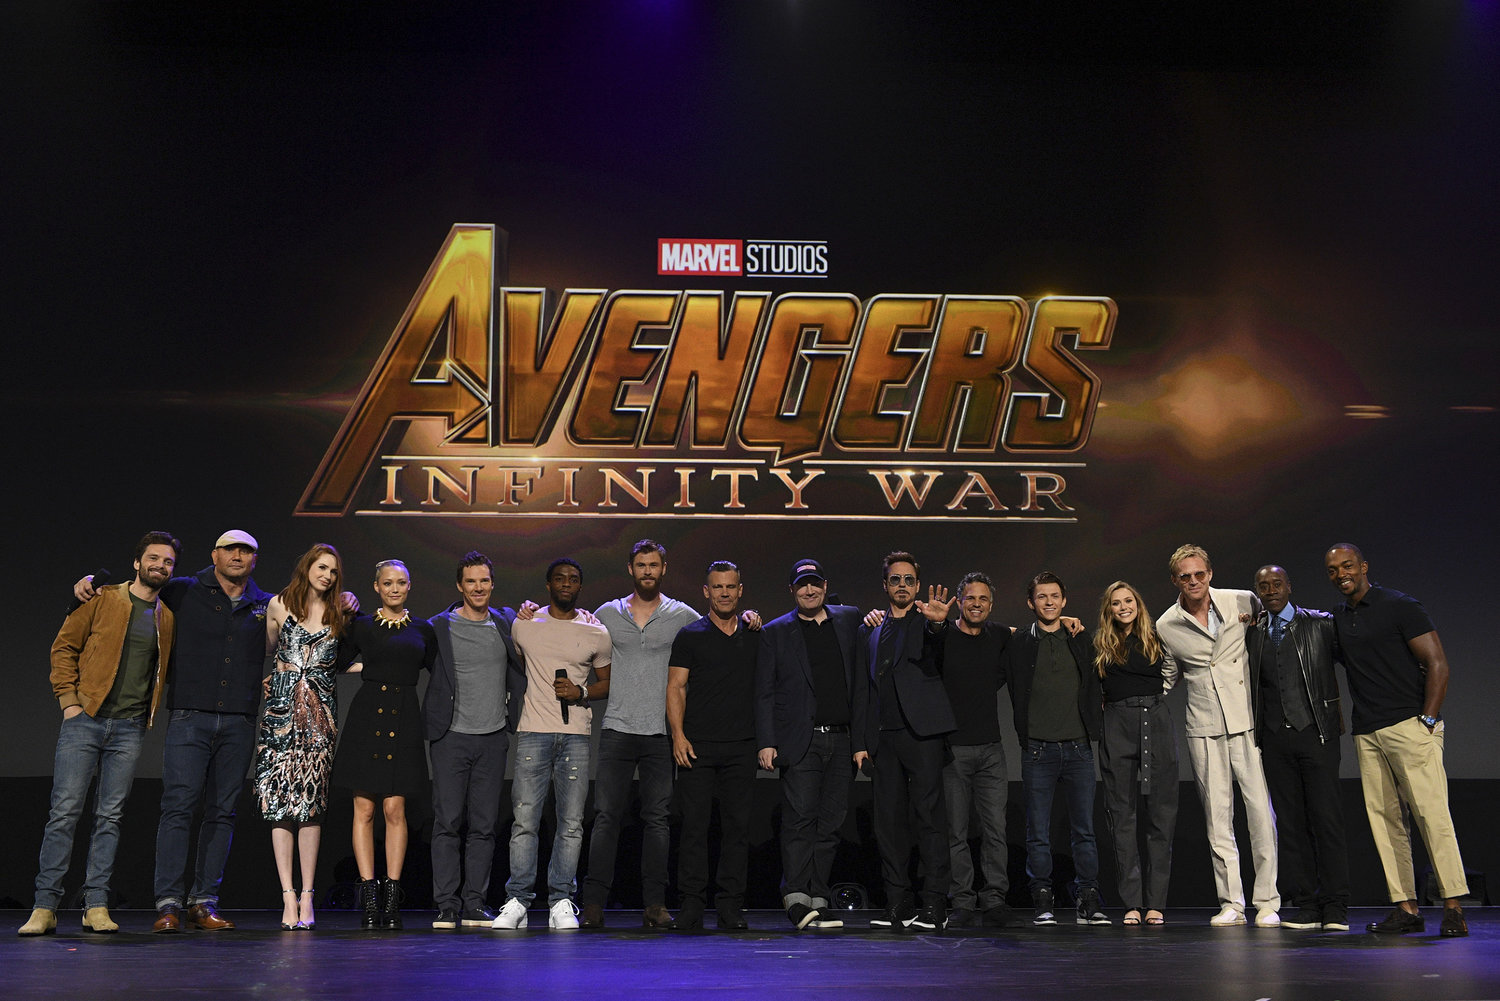 'INFINITY WAR.' The stars of 'Avengers: Infinity War' come together at D23 EXPO 2017. From left to right: Sebastian Stan, Dave Bautista, Karen Gillan, Pom Klementieff, Benedict Cumberbatch, Chadwick Boseman, Chris Hemsworth, Josh Brolin, Marvel Studios President Kevin Feige, Robert Downey Jr, Mark Ruffalo, Tom Holland, Elizabeth Olsen, Paul Bettany, Don Cheadle, and Anthony Mackie. Photo by Disney/Image Group LA